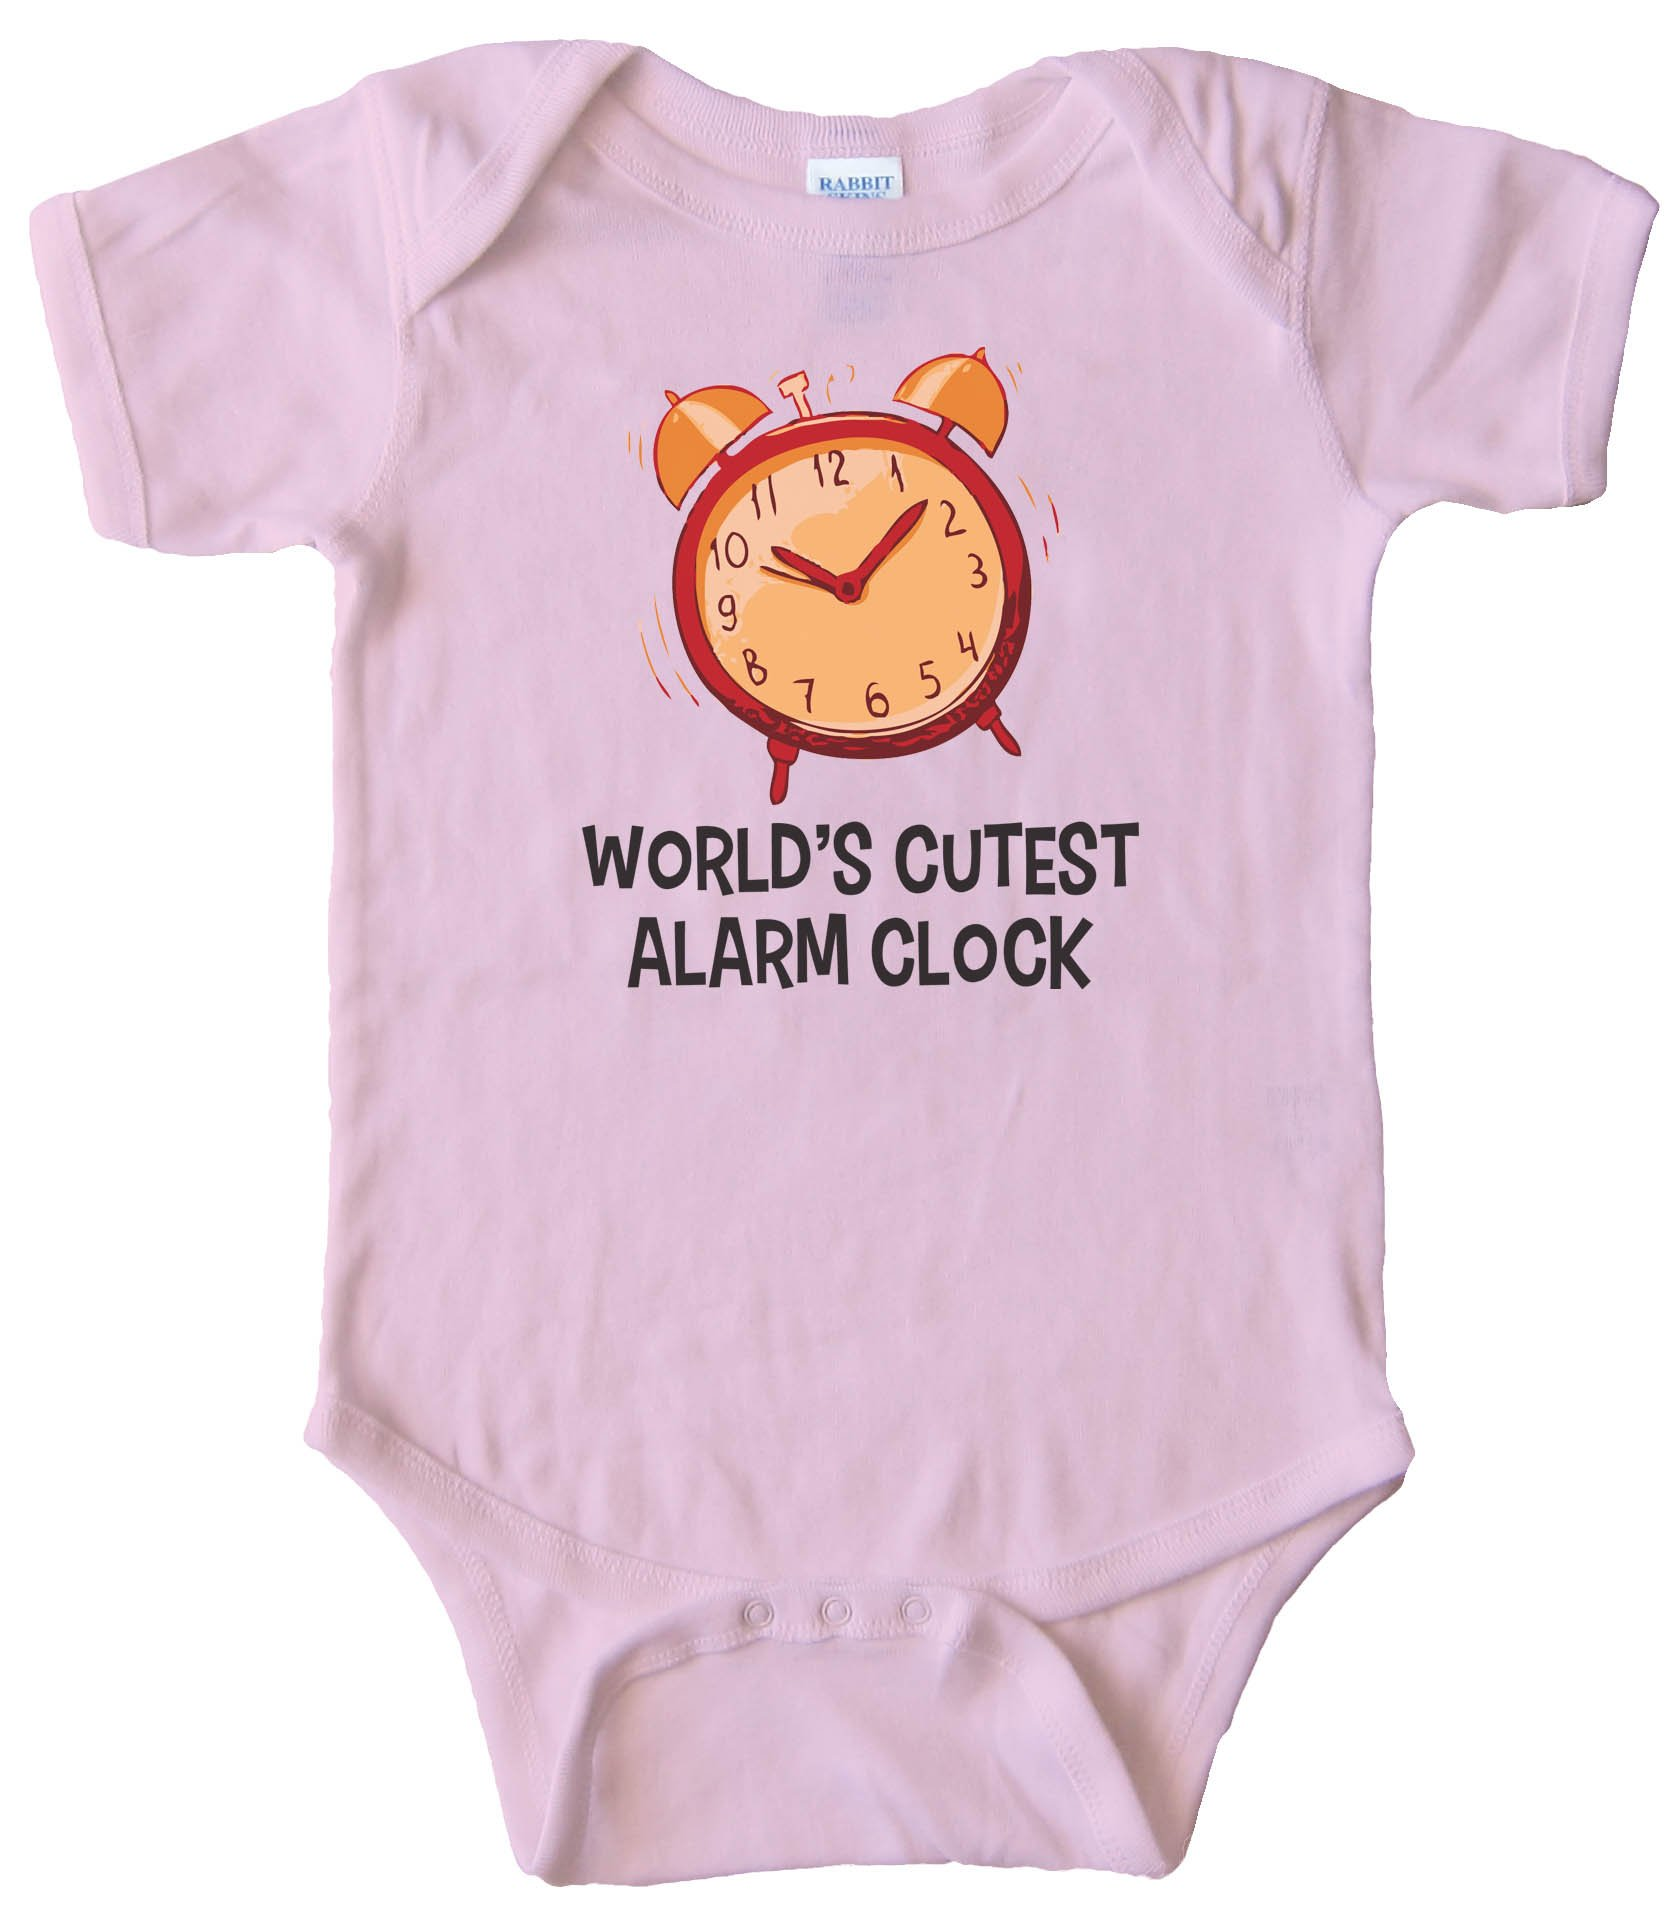 World'S Cutest Alarm Clock - Baby Bodysuit